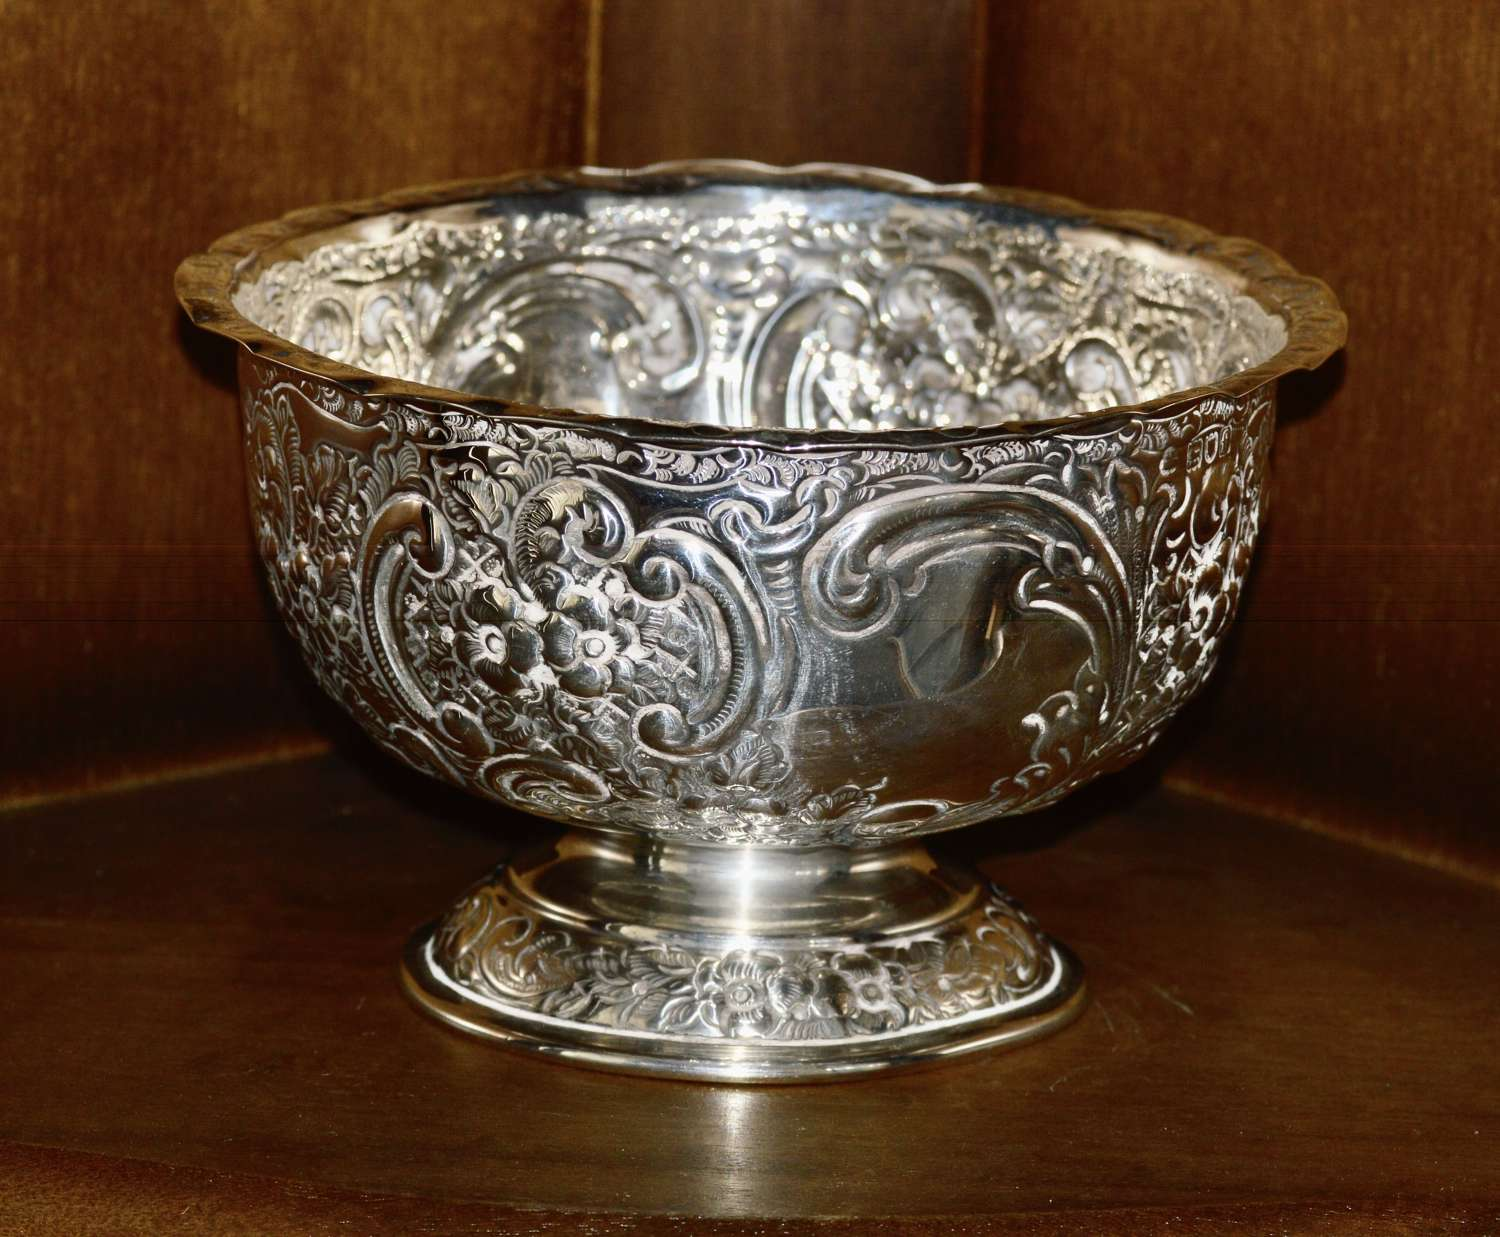 1901 Sterling Silver Bowl London's James Wakely, Frank Clark Wheeler